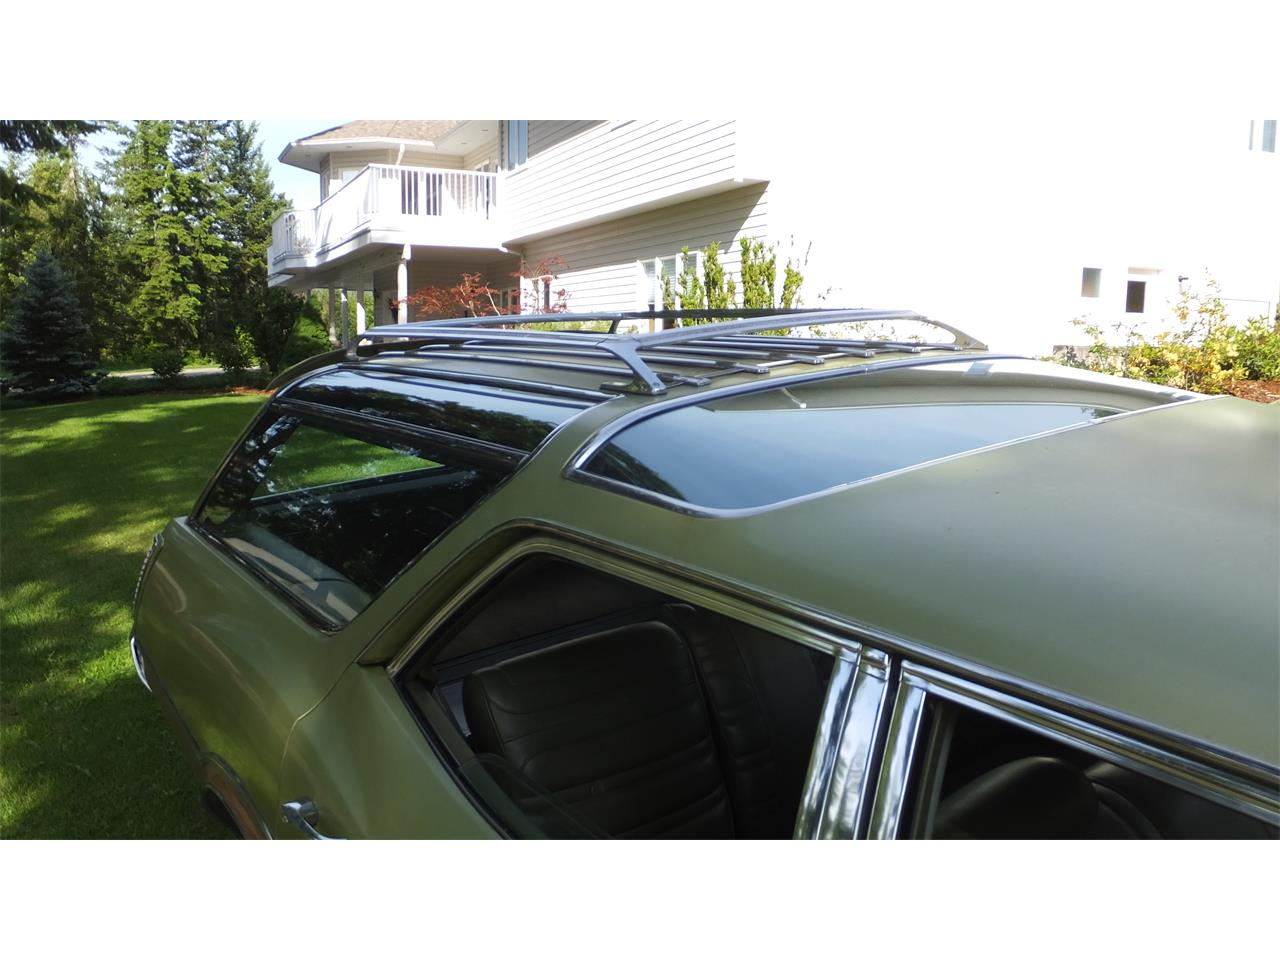 Large Picture of Classic 1971 Oldsmobile Vista Cruiser located in Enderby B.C. - $15,500.00 - LBXI